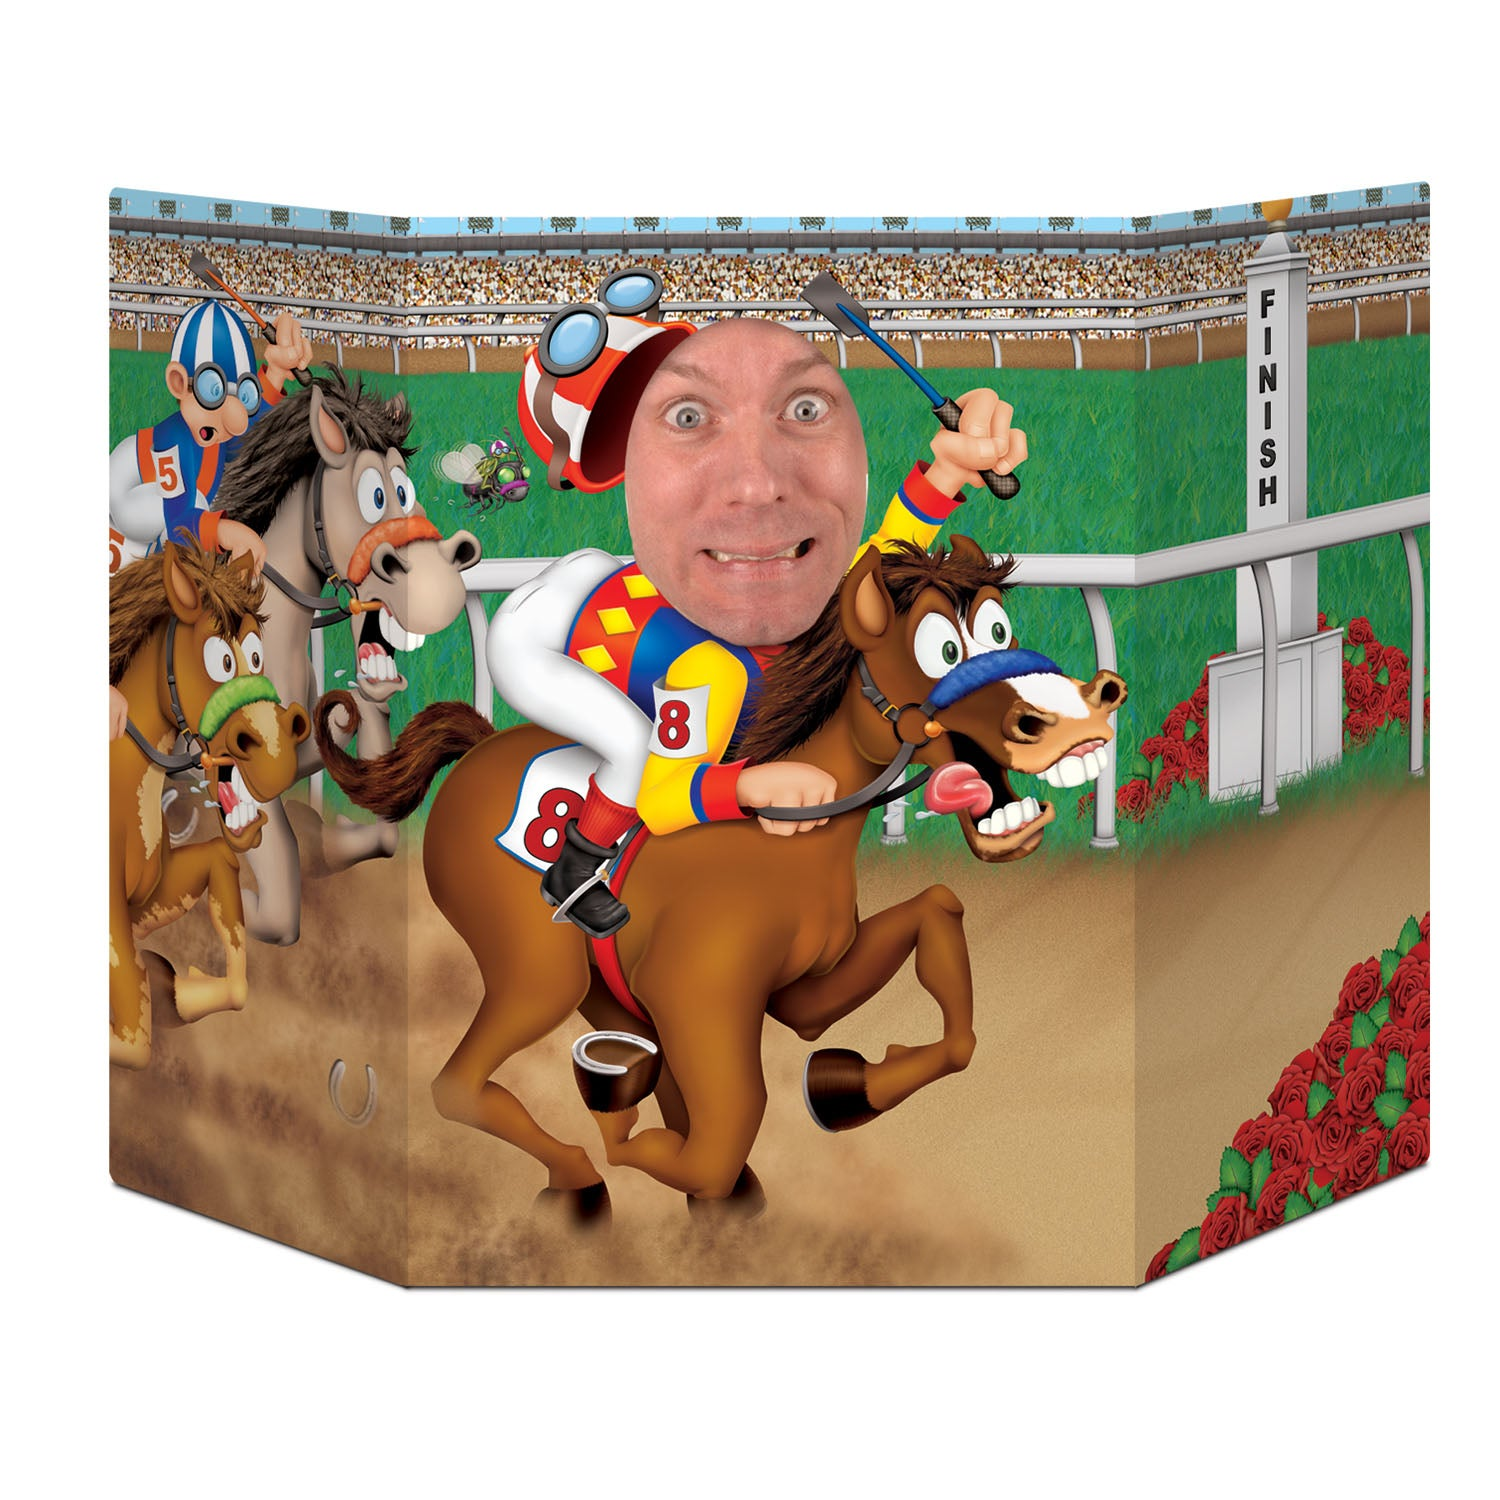 Horse Racing Photo Prop by Beistle - Derby Day Theme Decorations